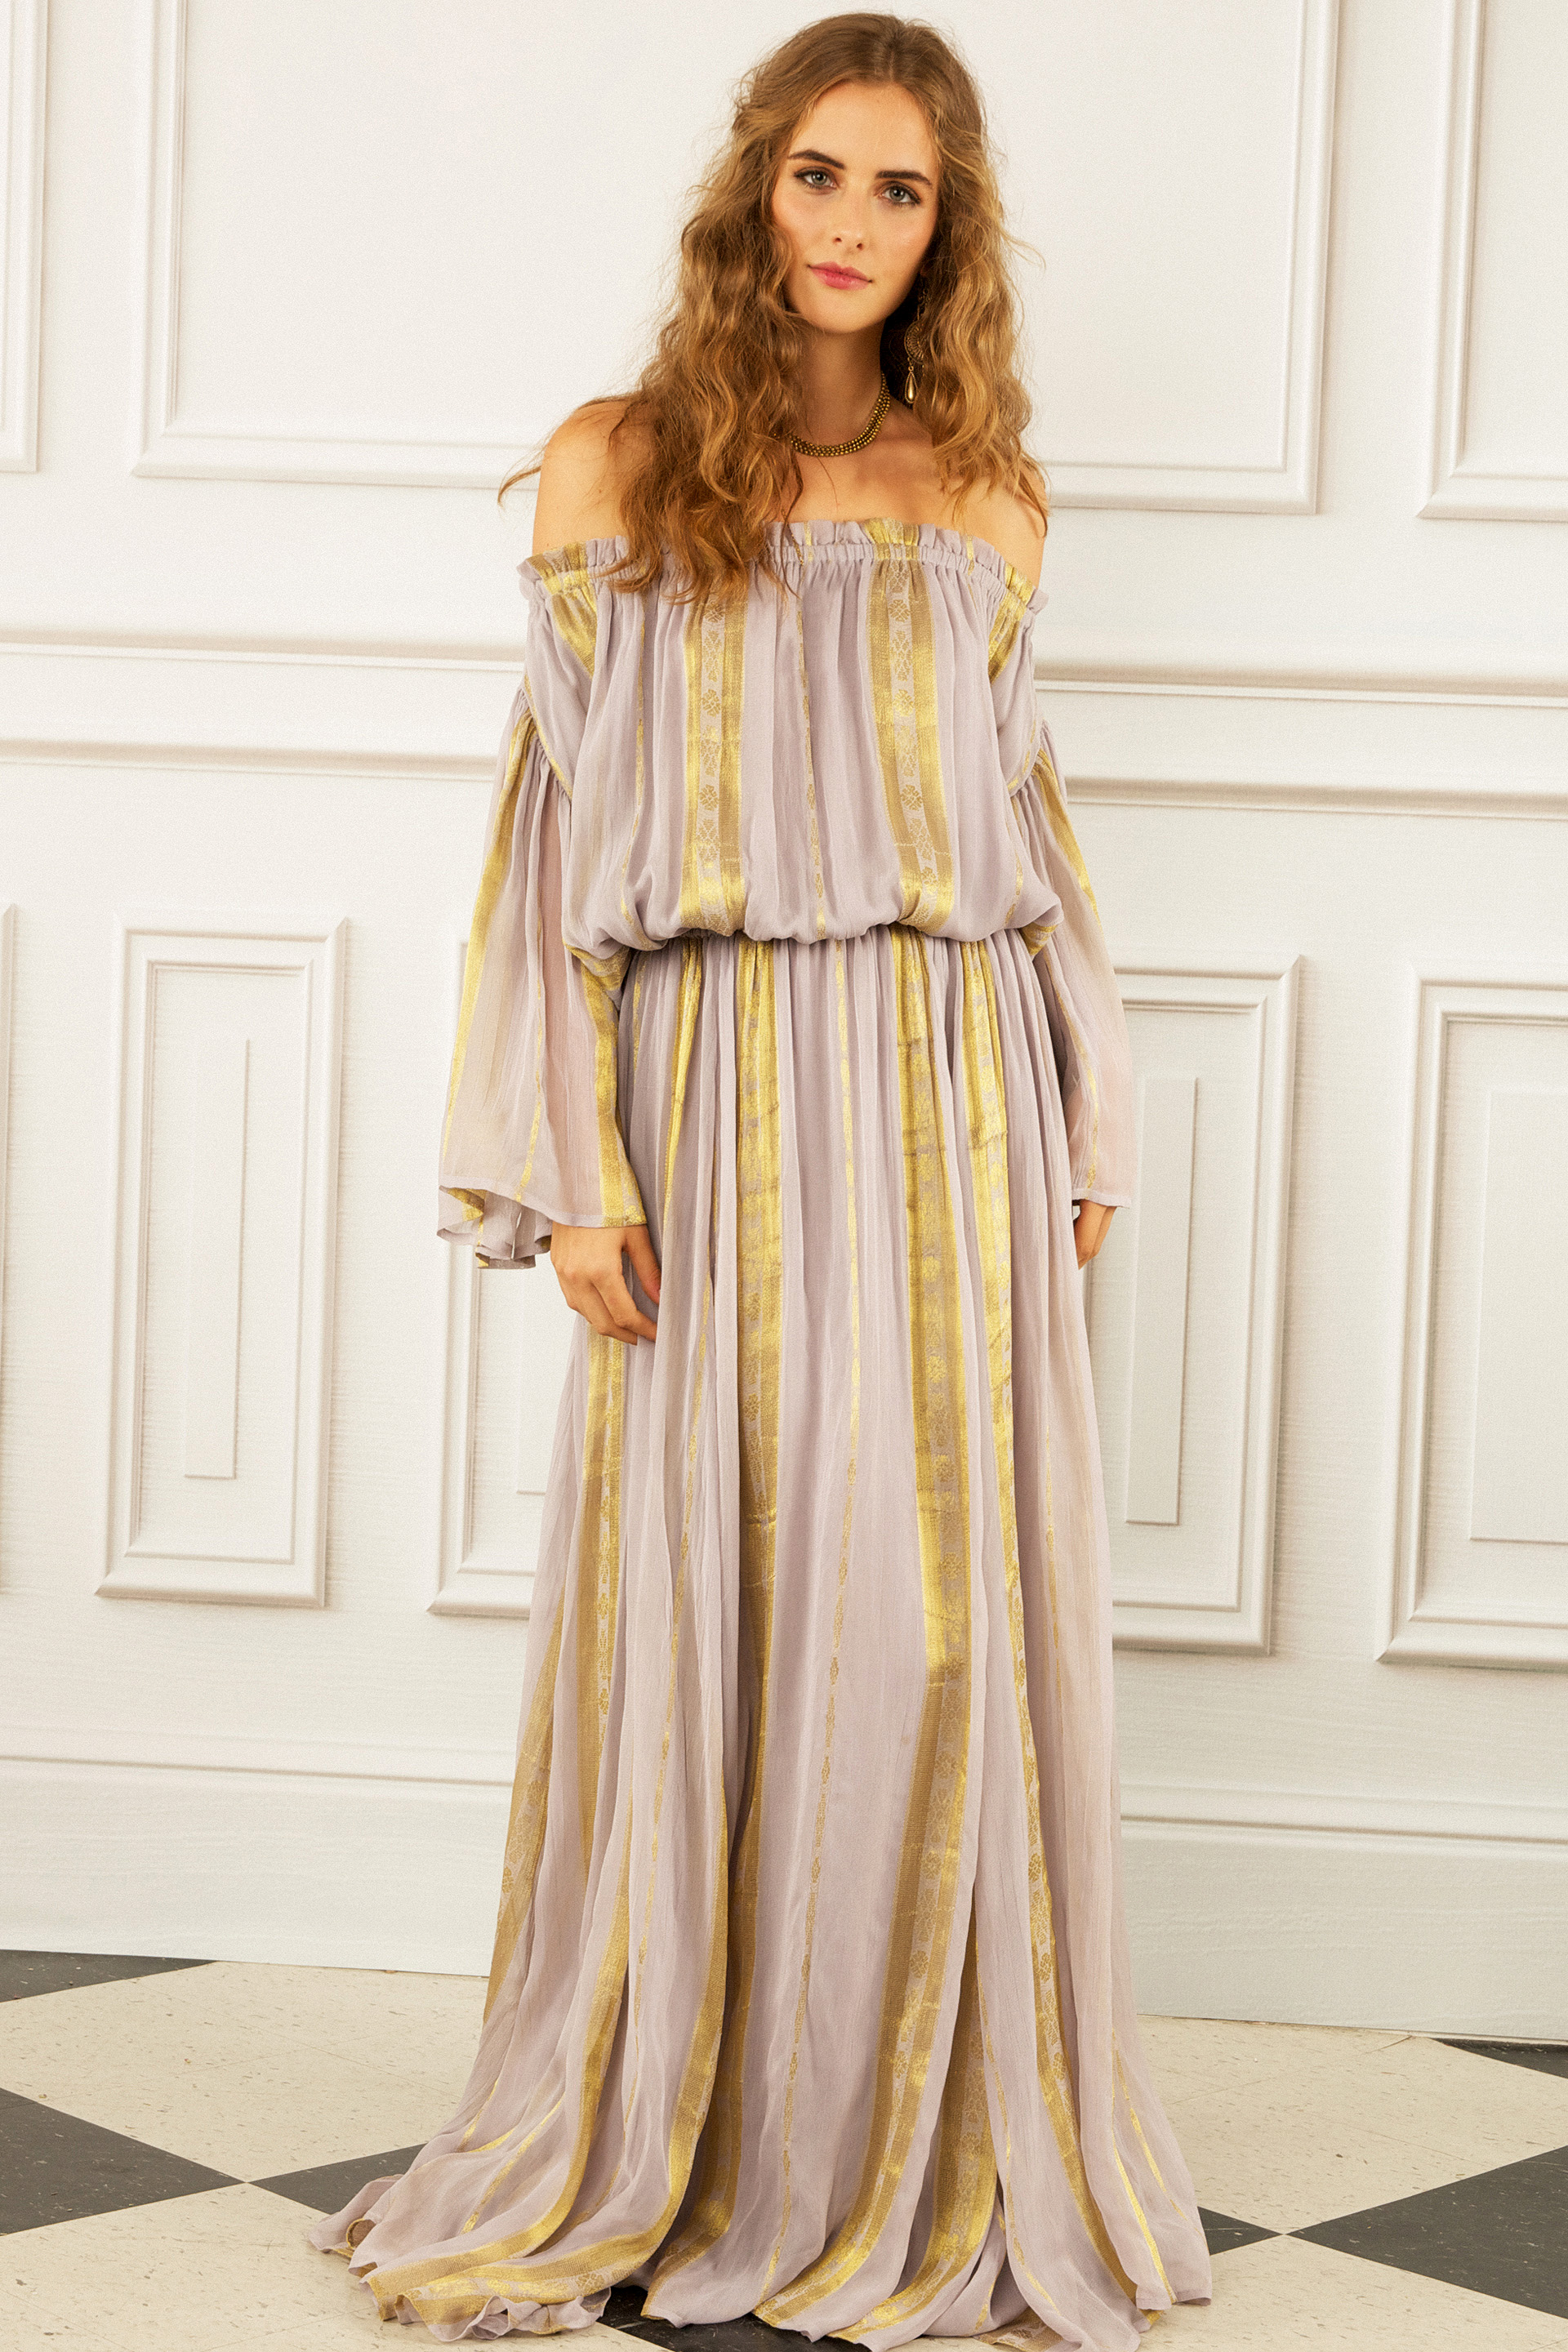 maria korovilas wedding dress spring 2017 off the shoulder, stripes